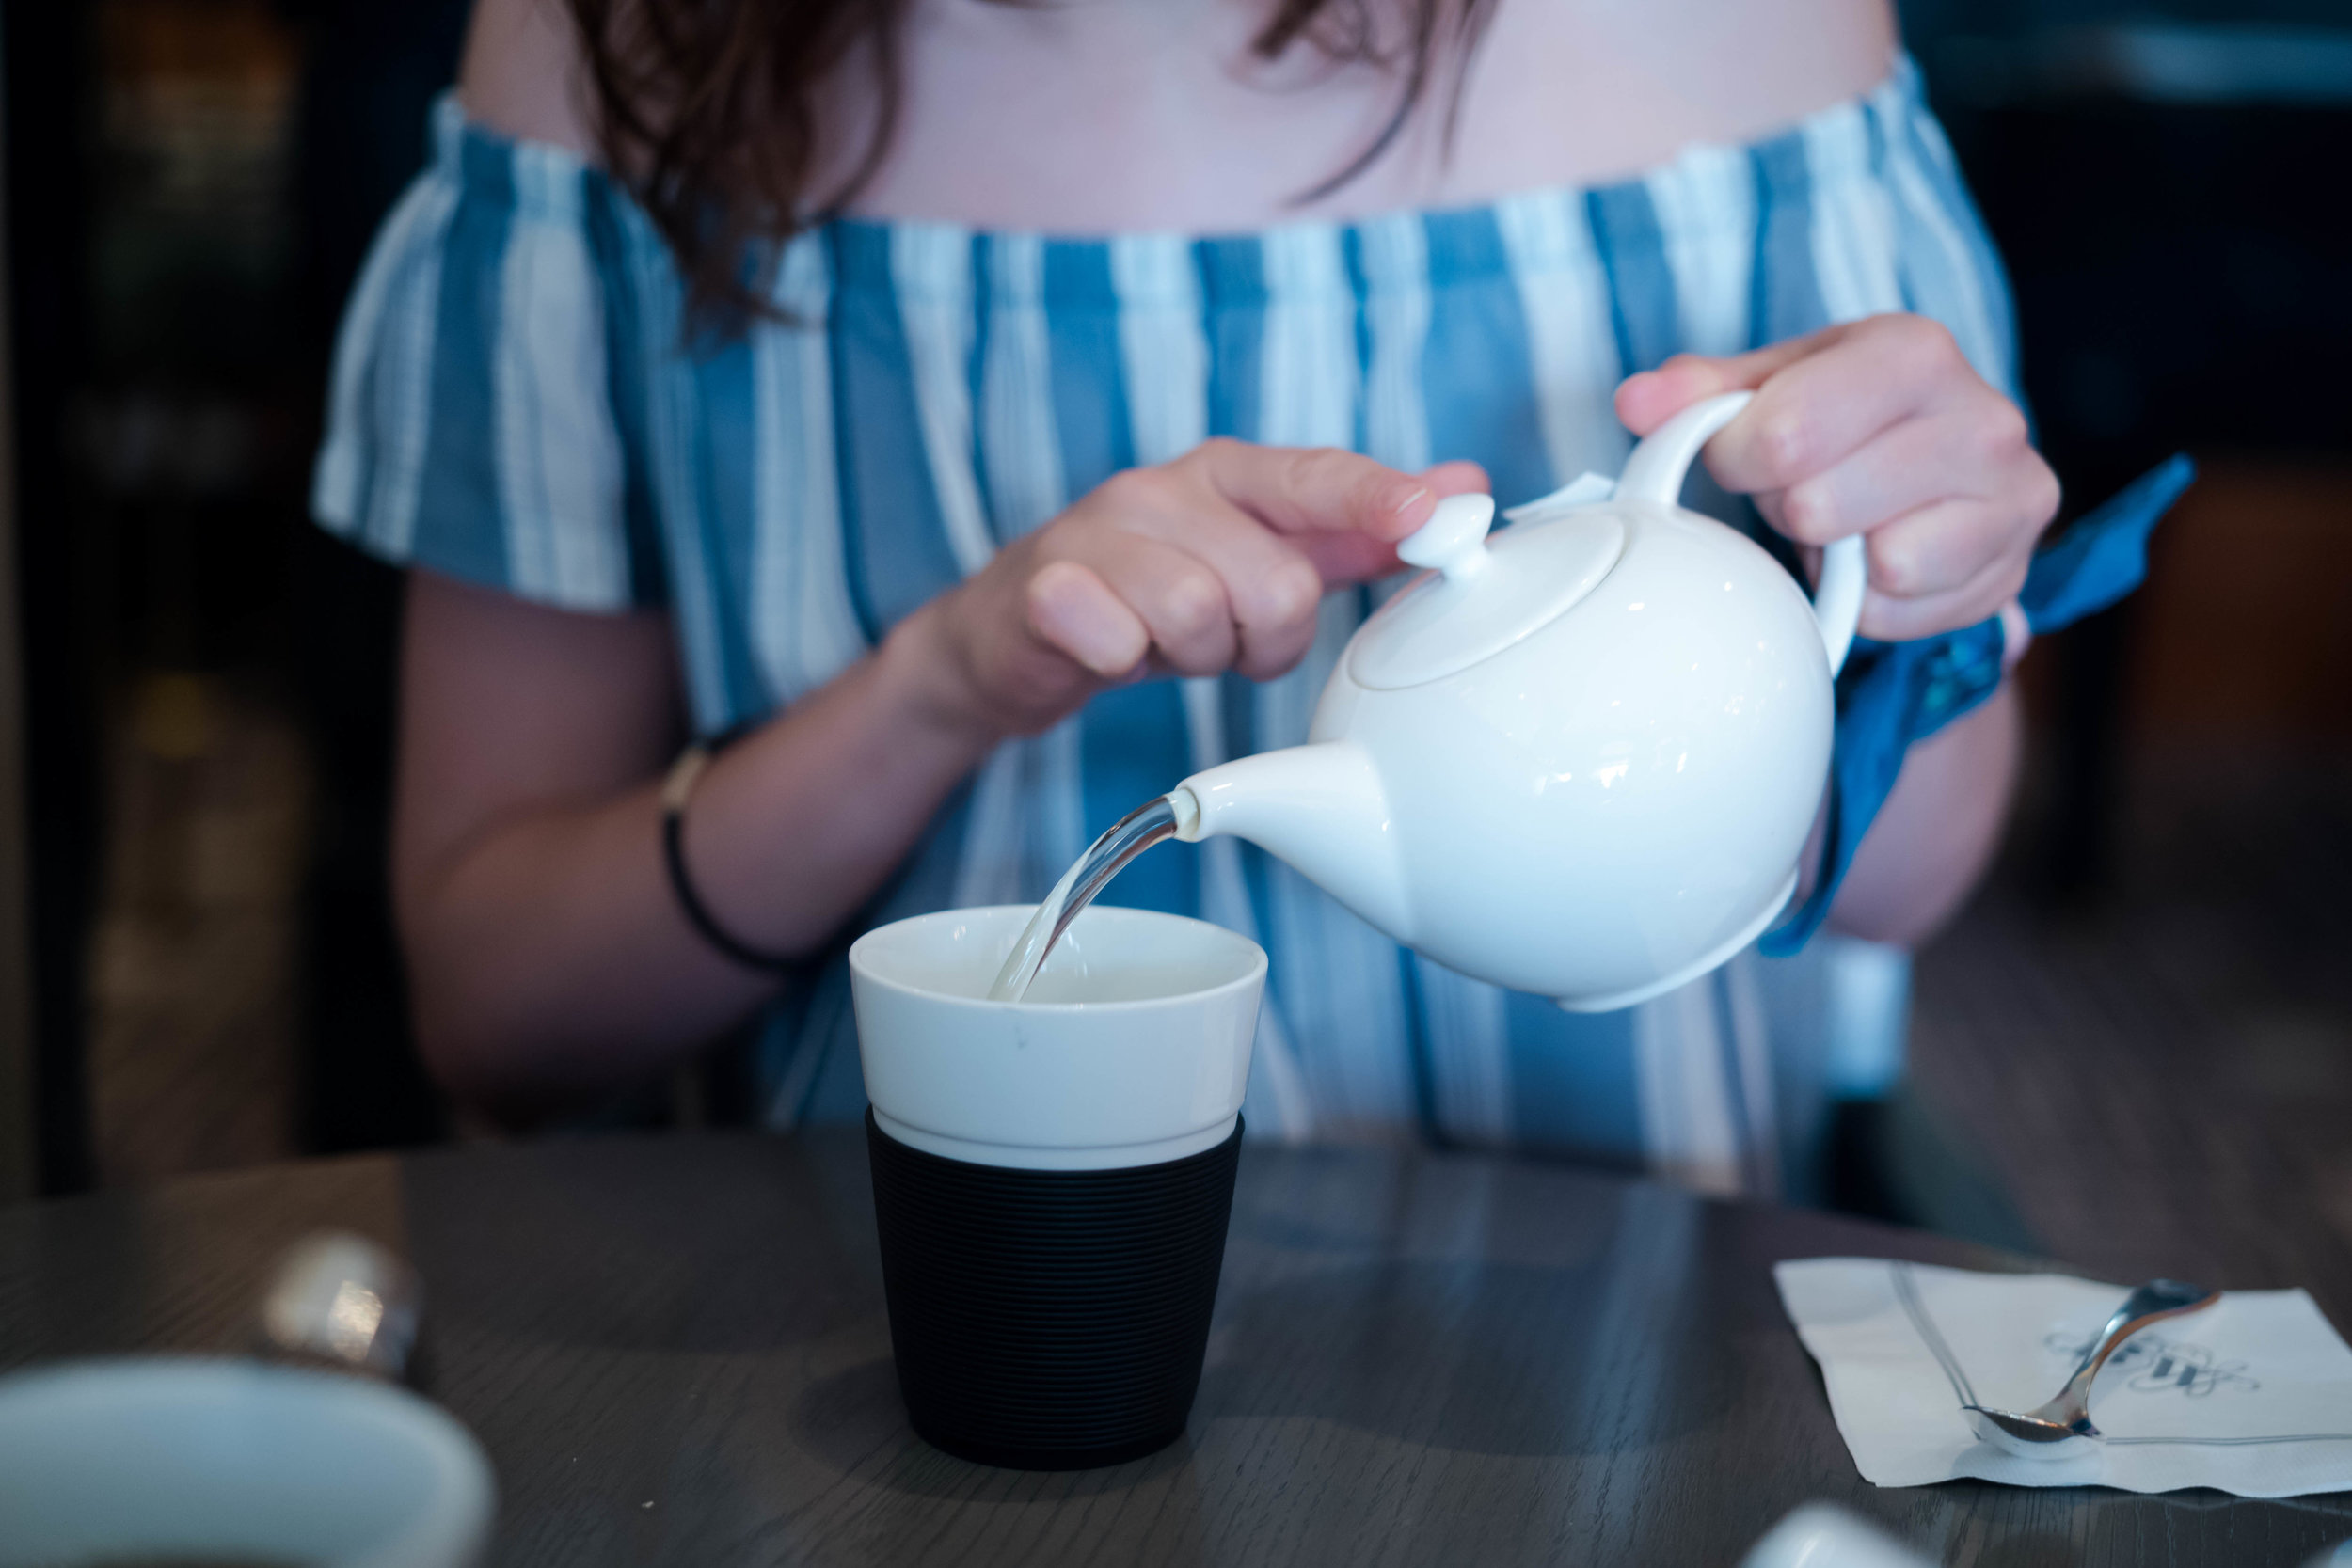 Pouring tea. Leica APO 50mm f/2 Summicron ASPH - wide open at ISO 1600